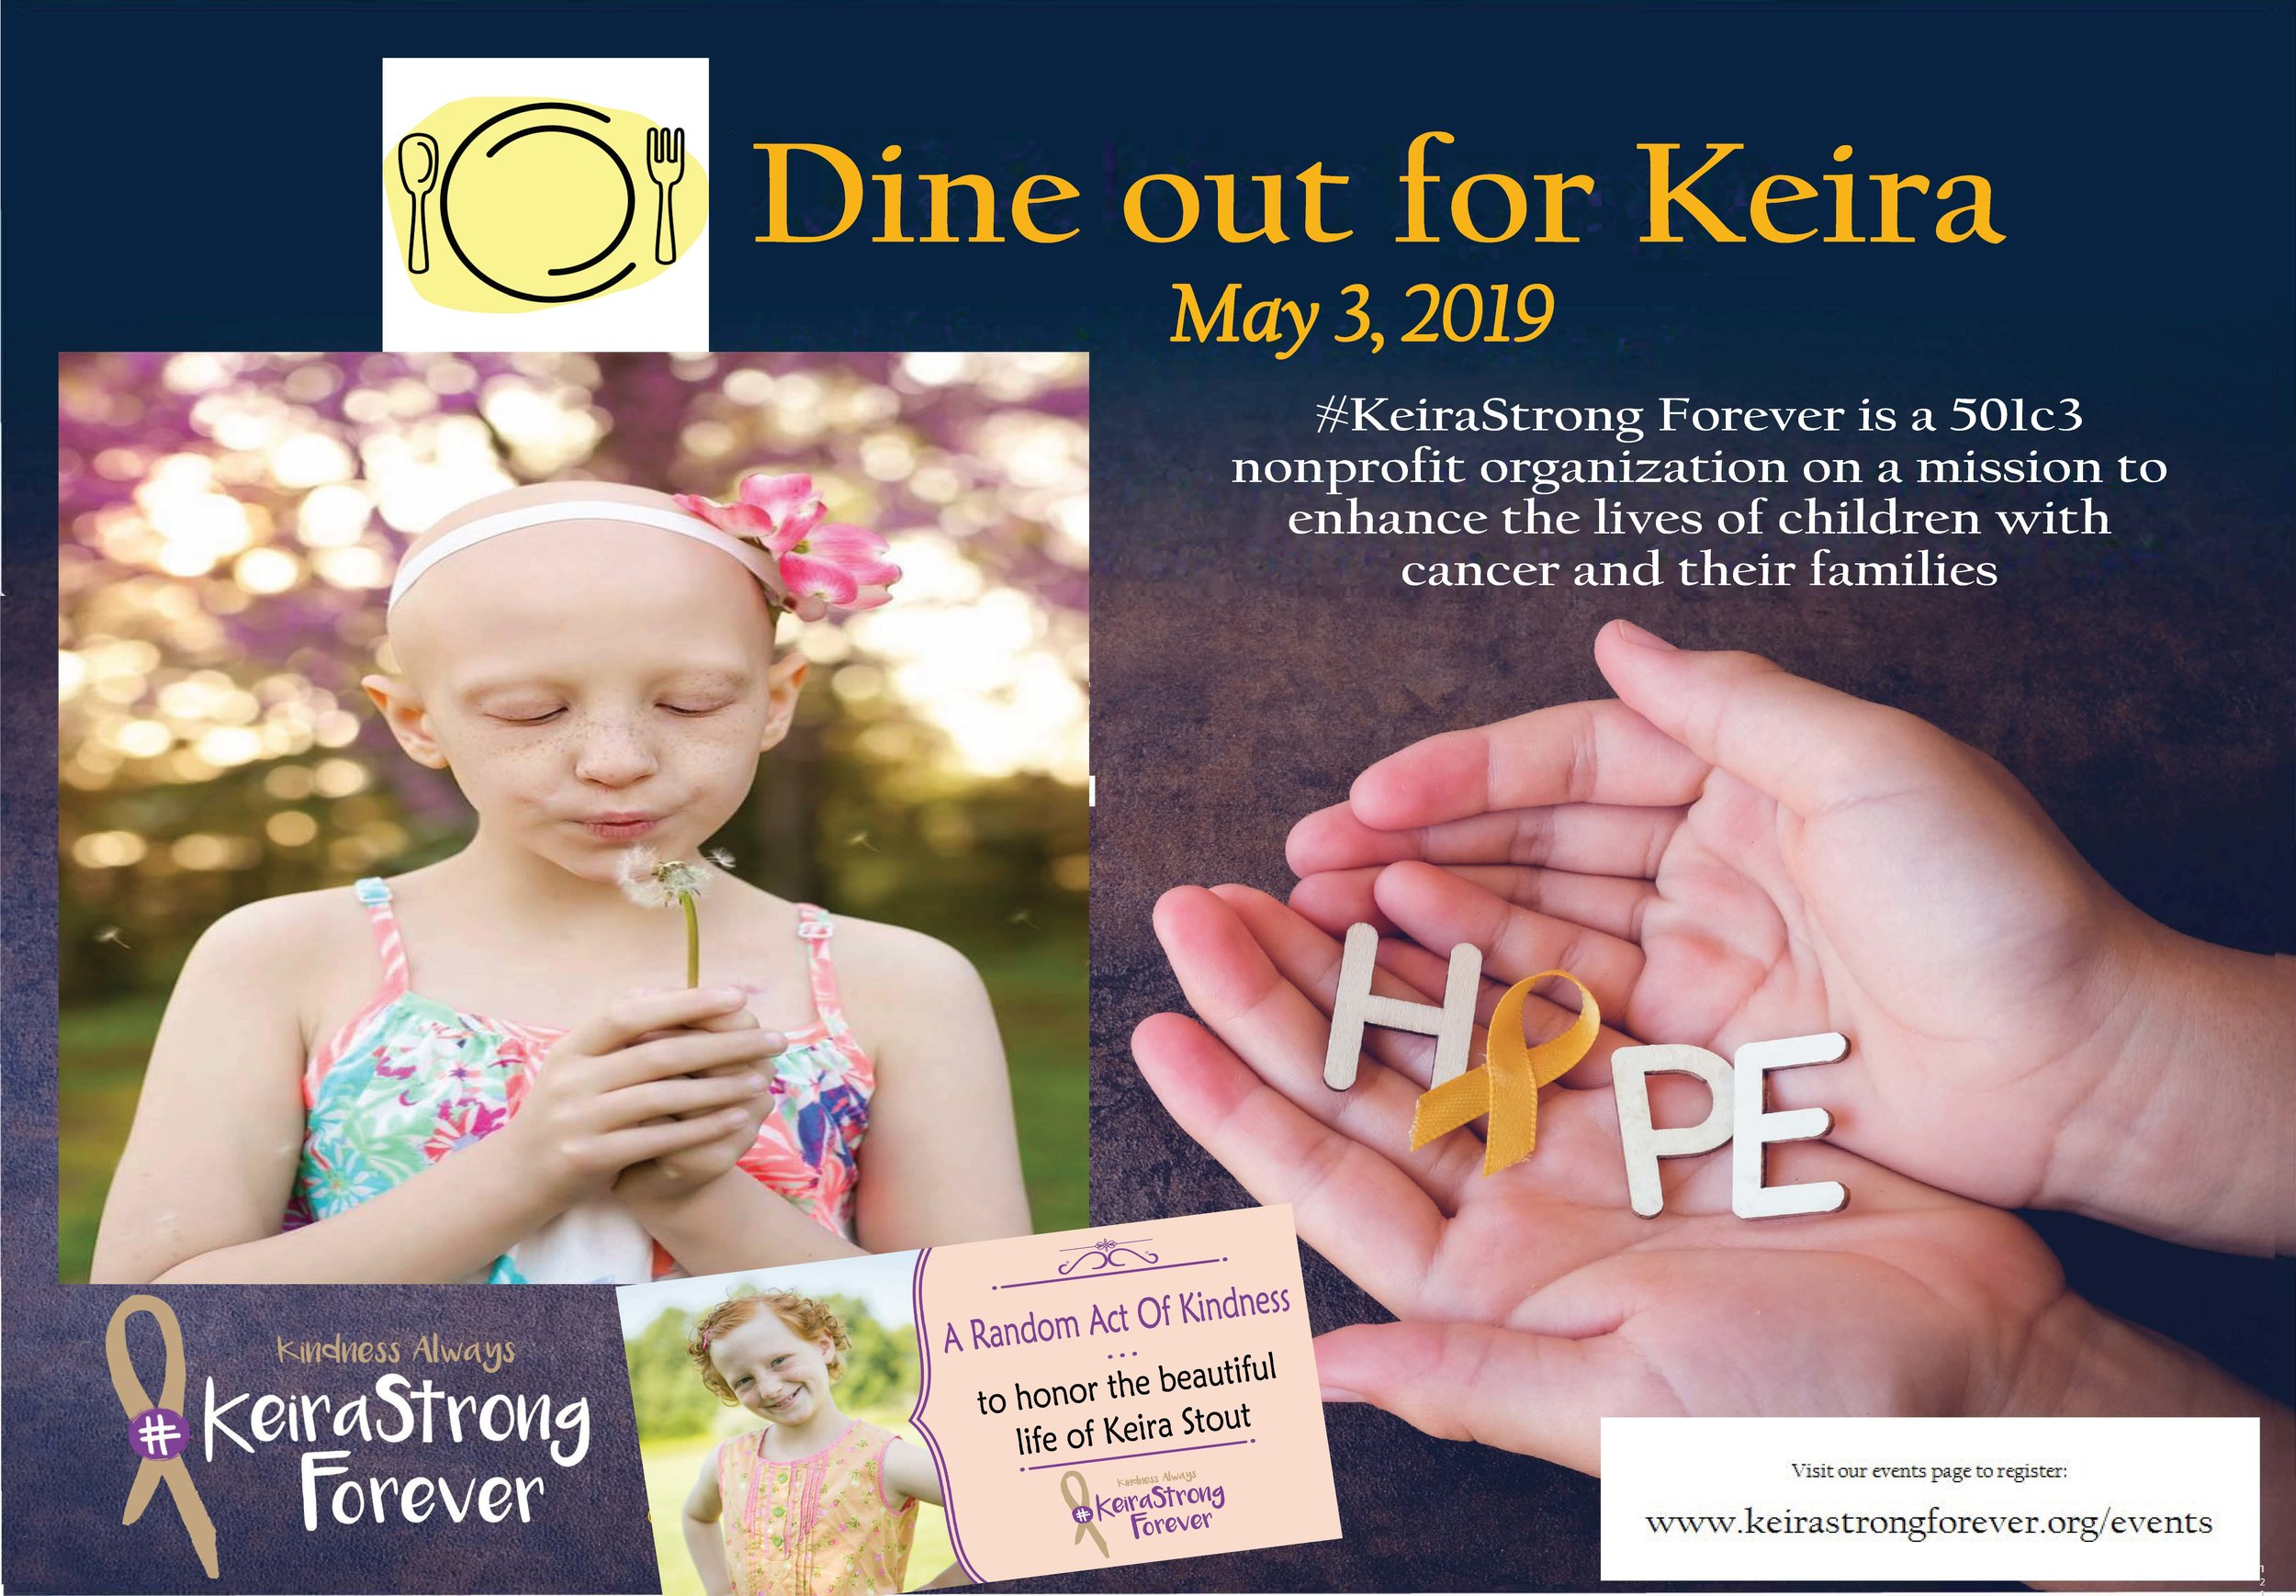 Dine out for Keira2.jpg